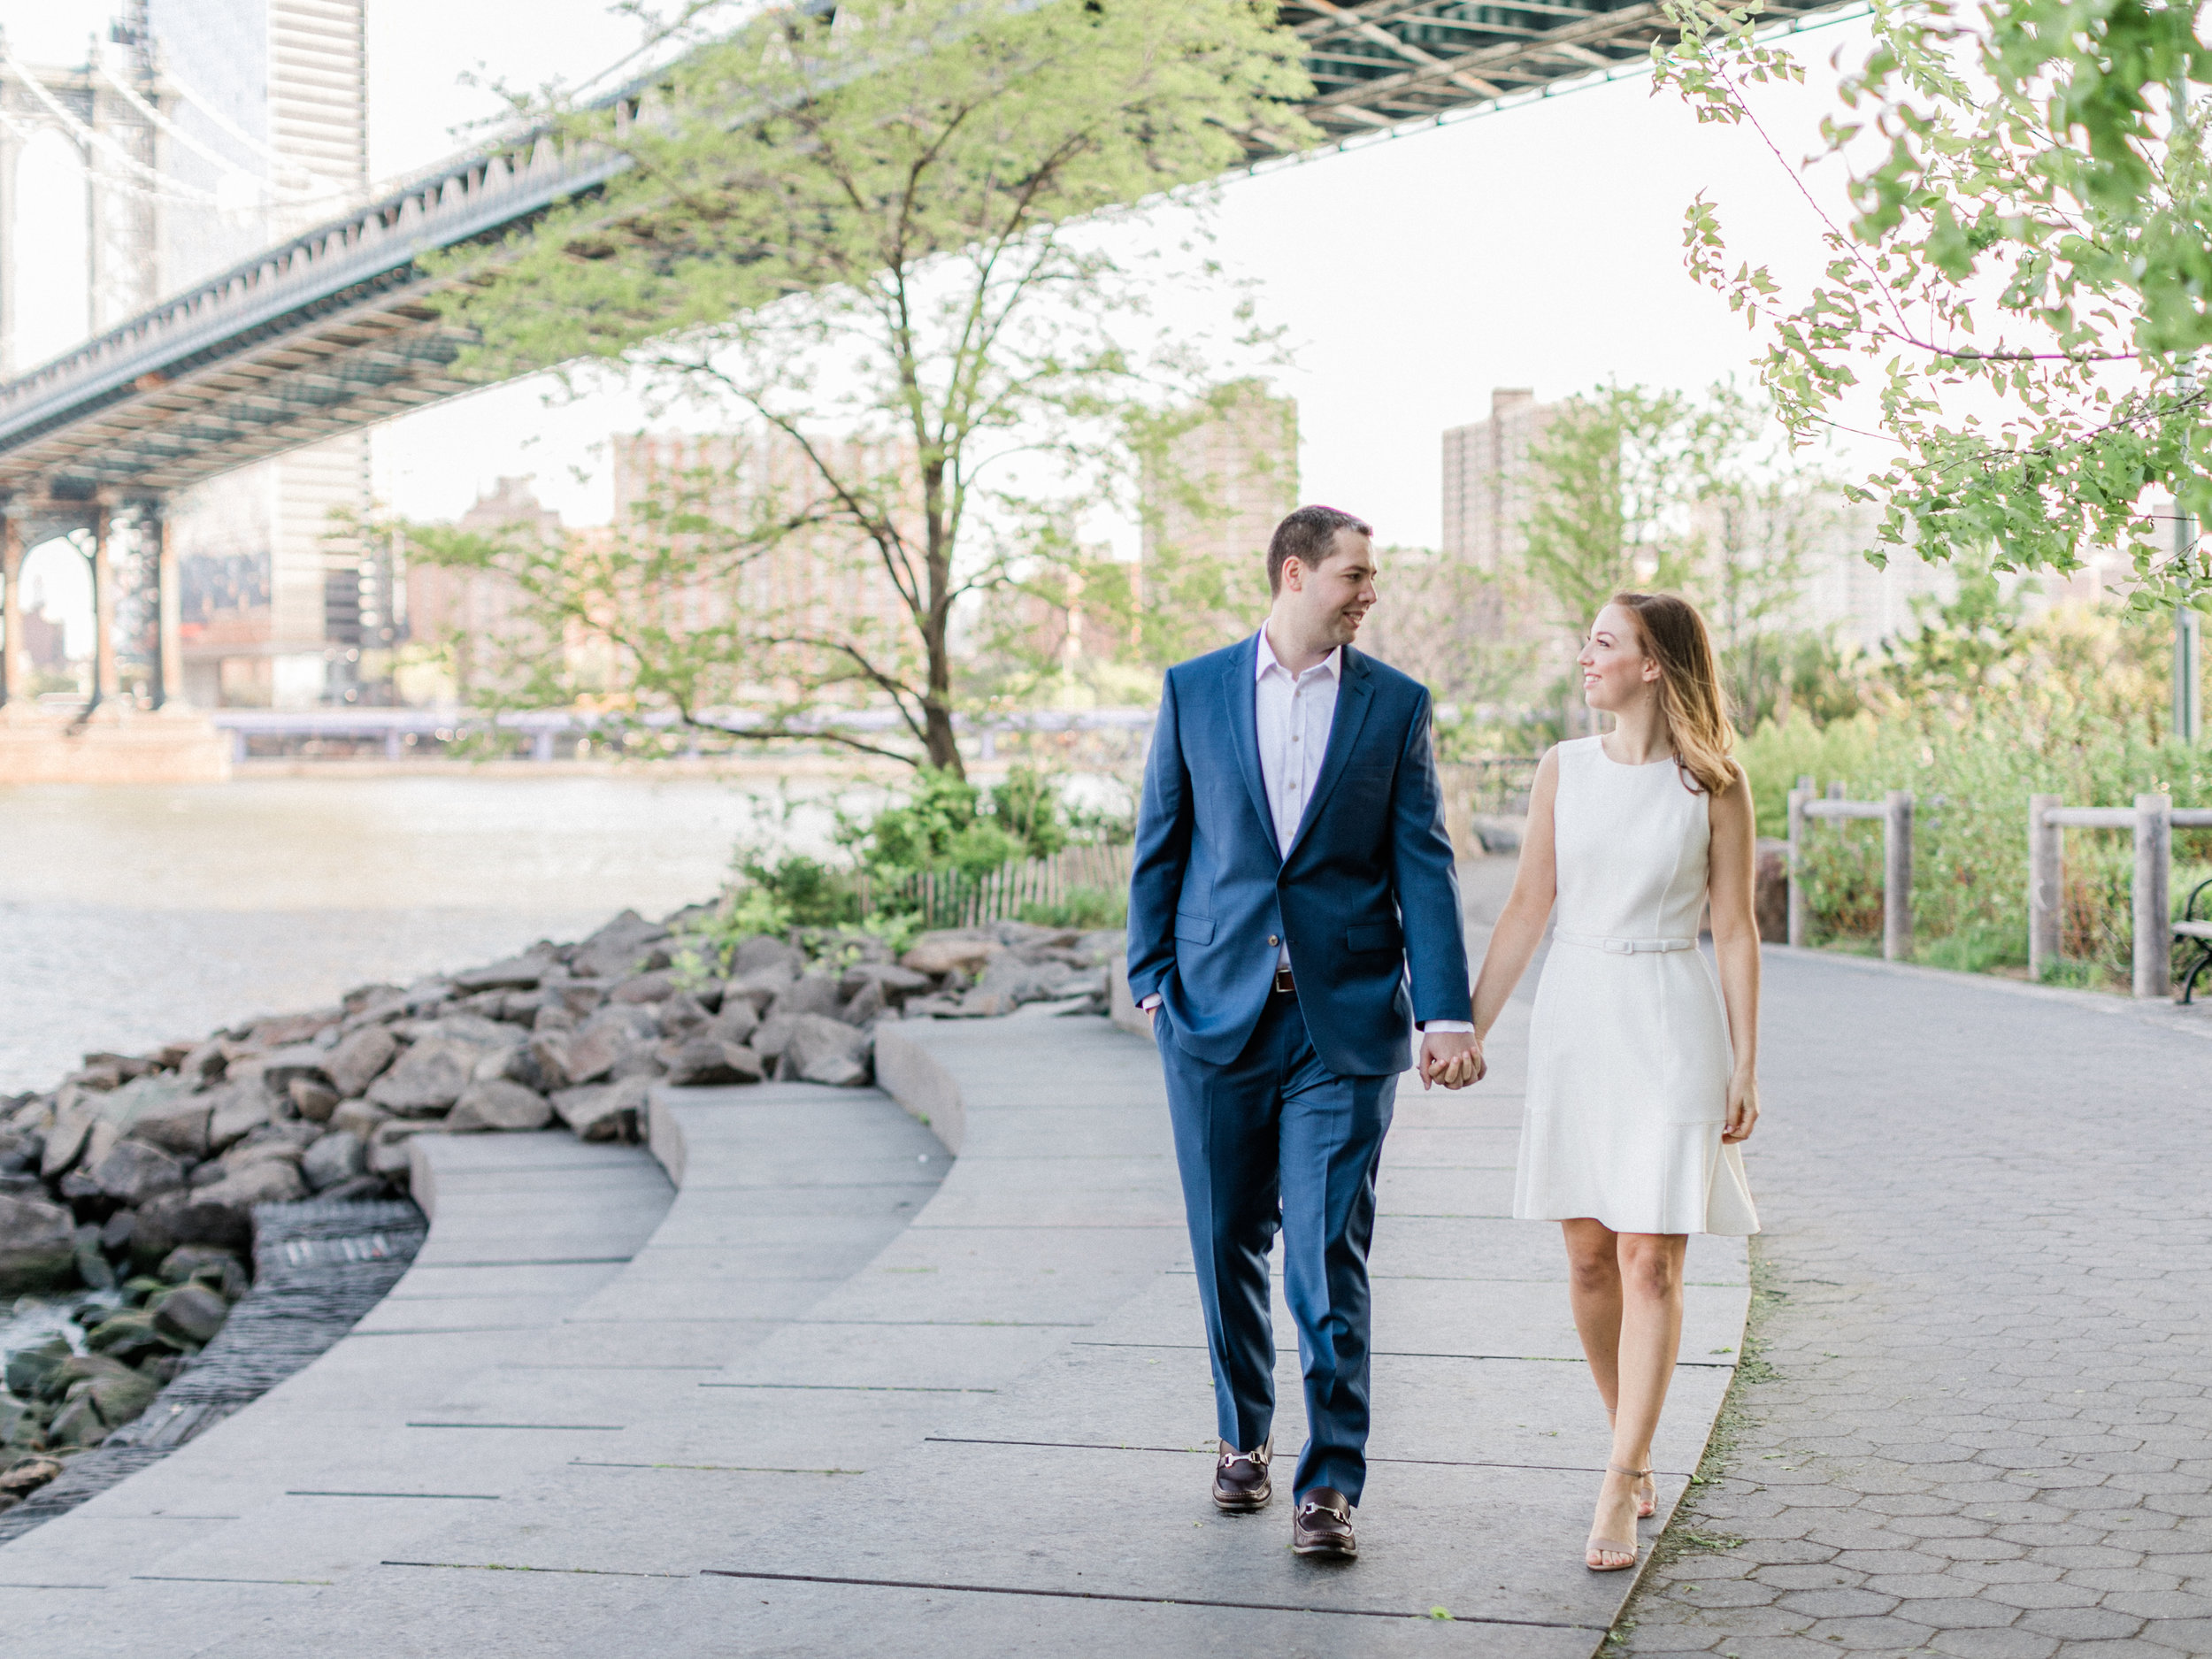 Dumbo-Engagement-Session-Asher-Gardner23.jpg